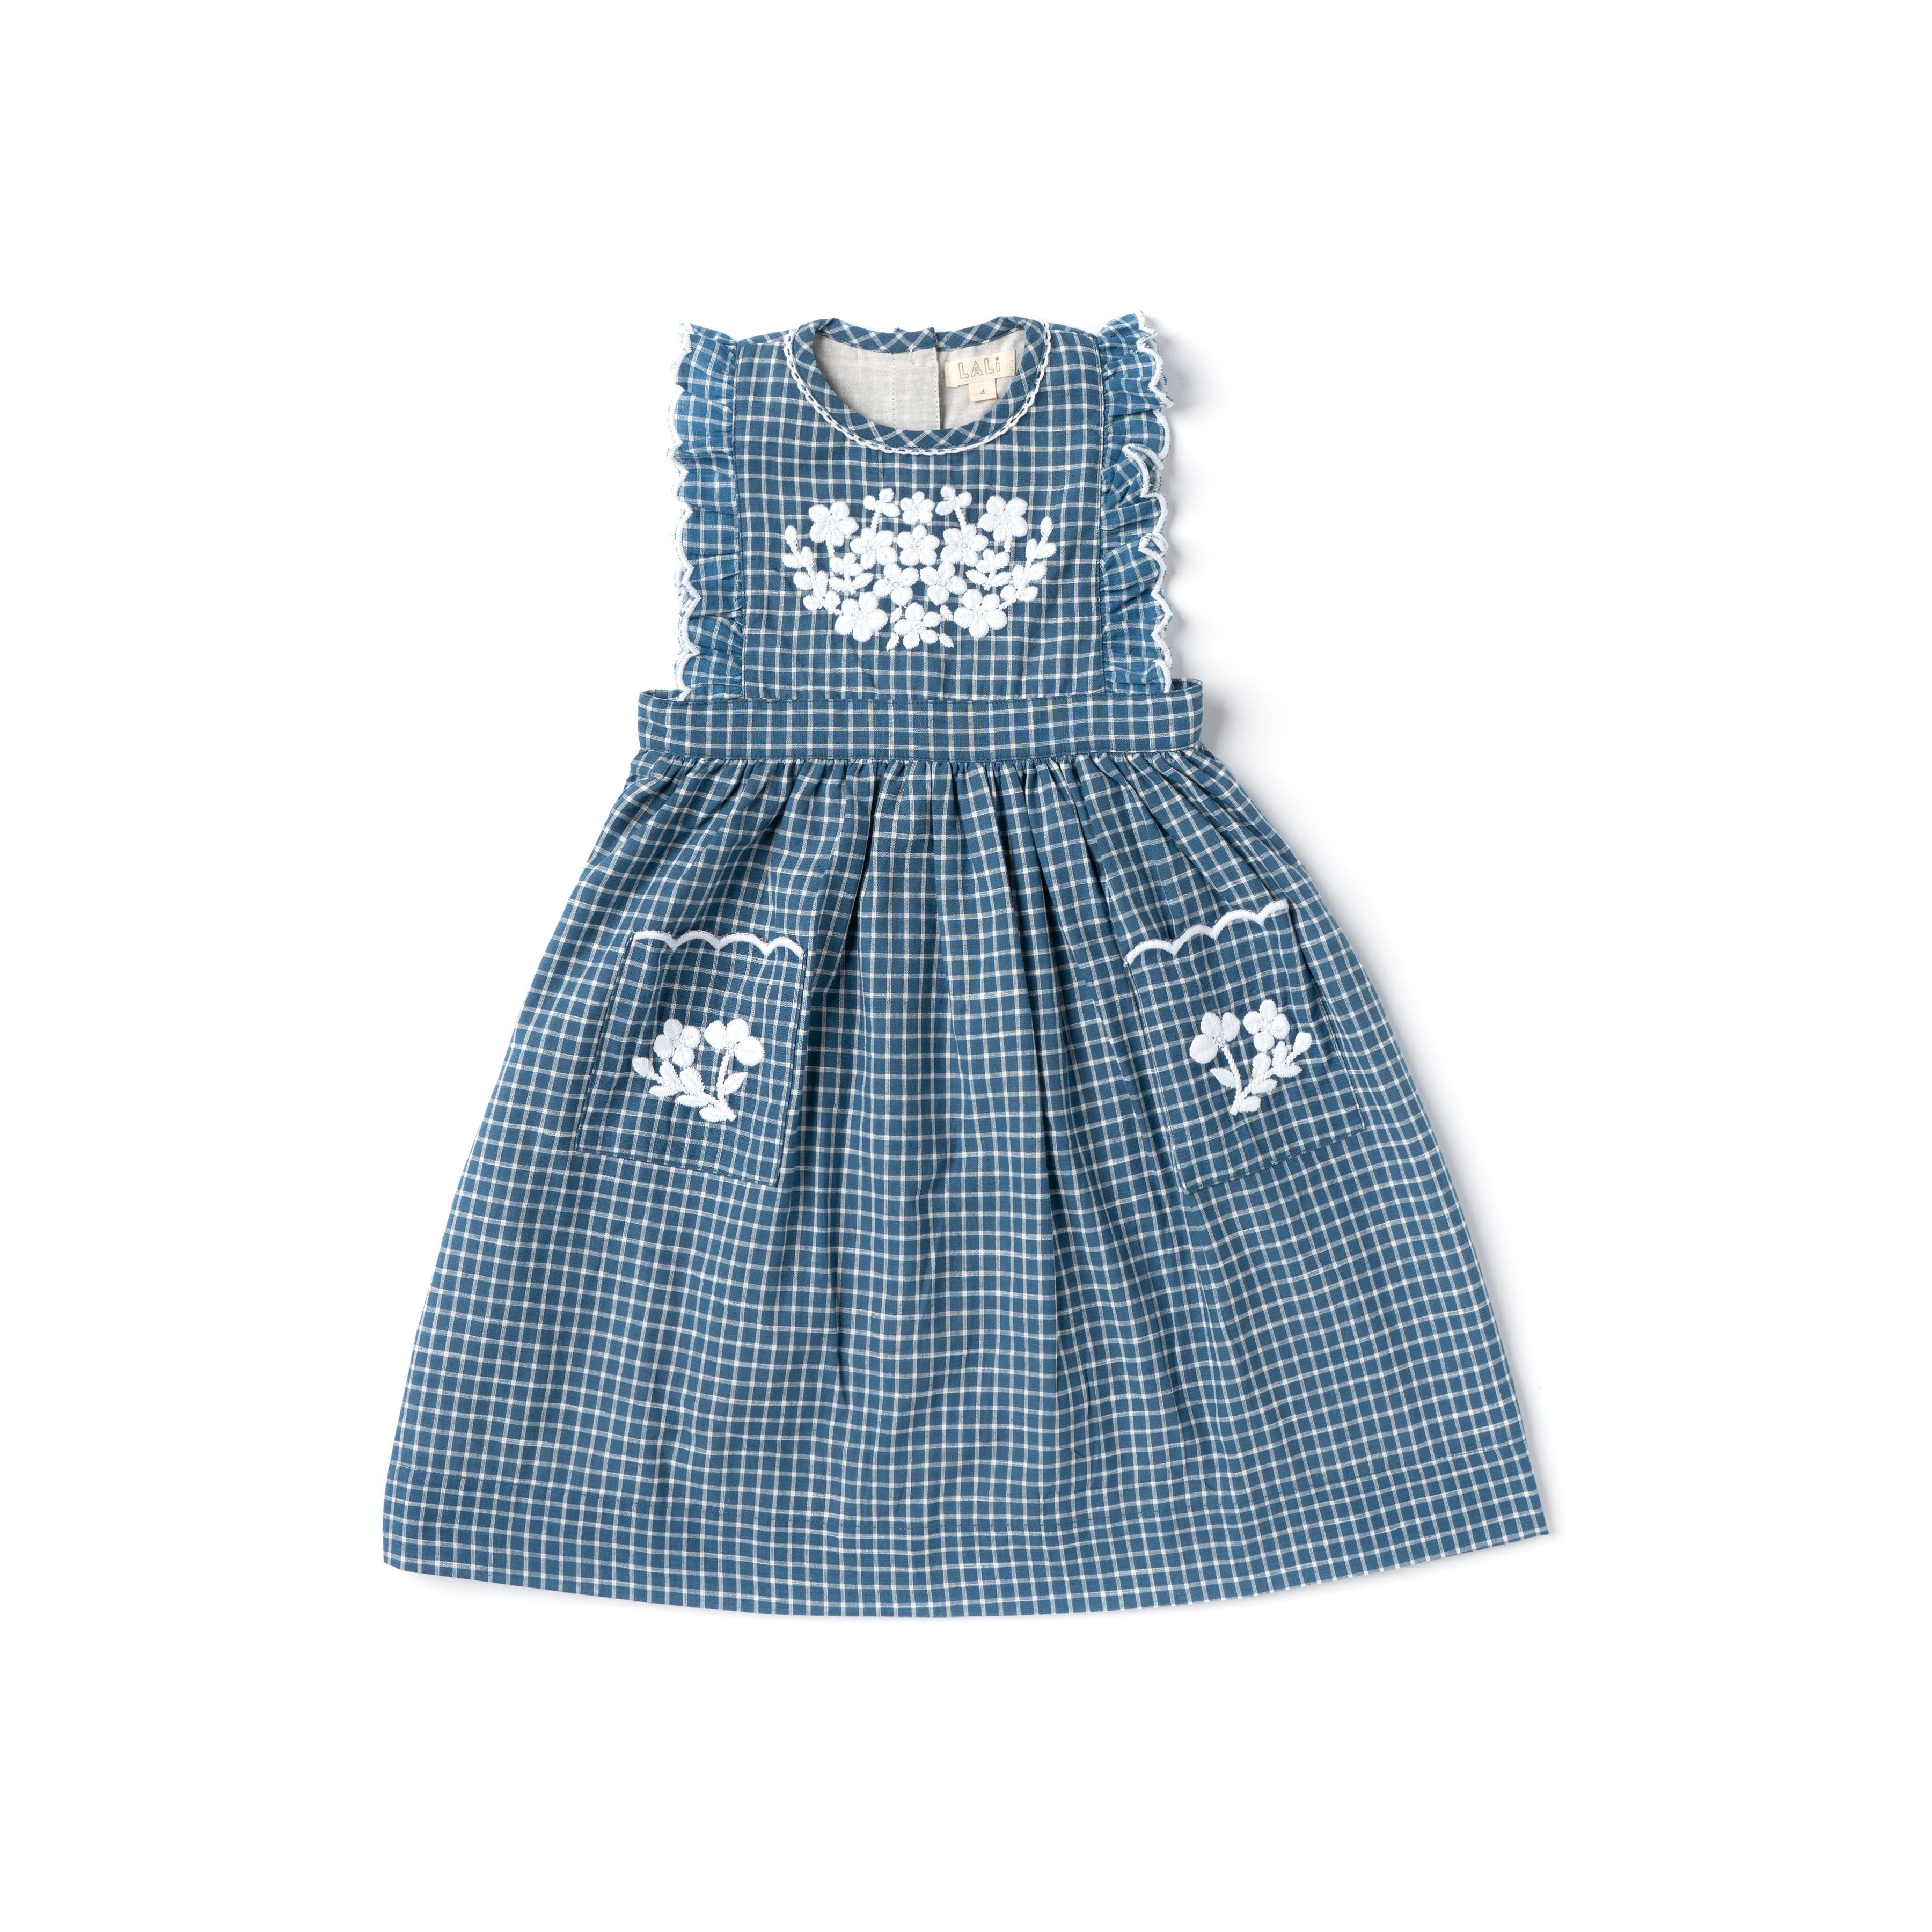 Clover Dress - Blue Chex